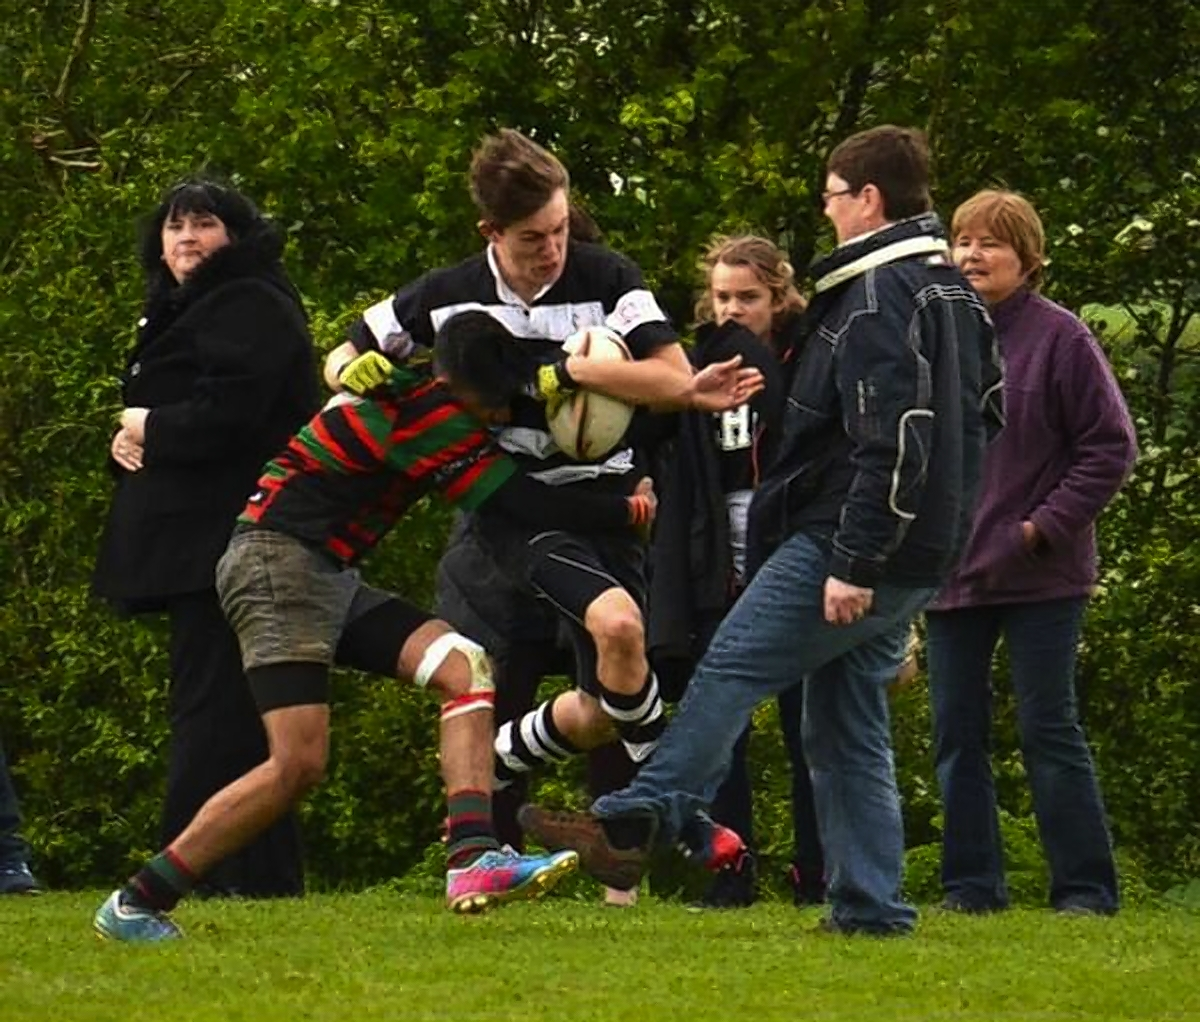 Fullerians rugby trip dad give two-year touchline ban